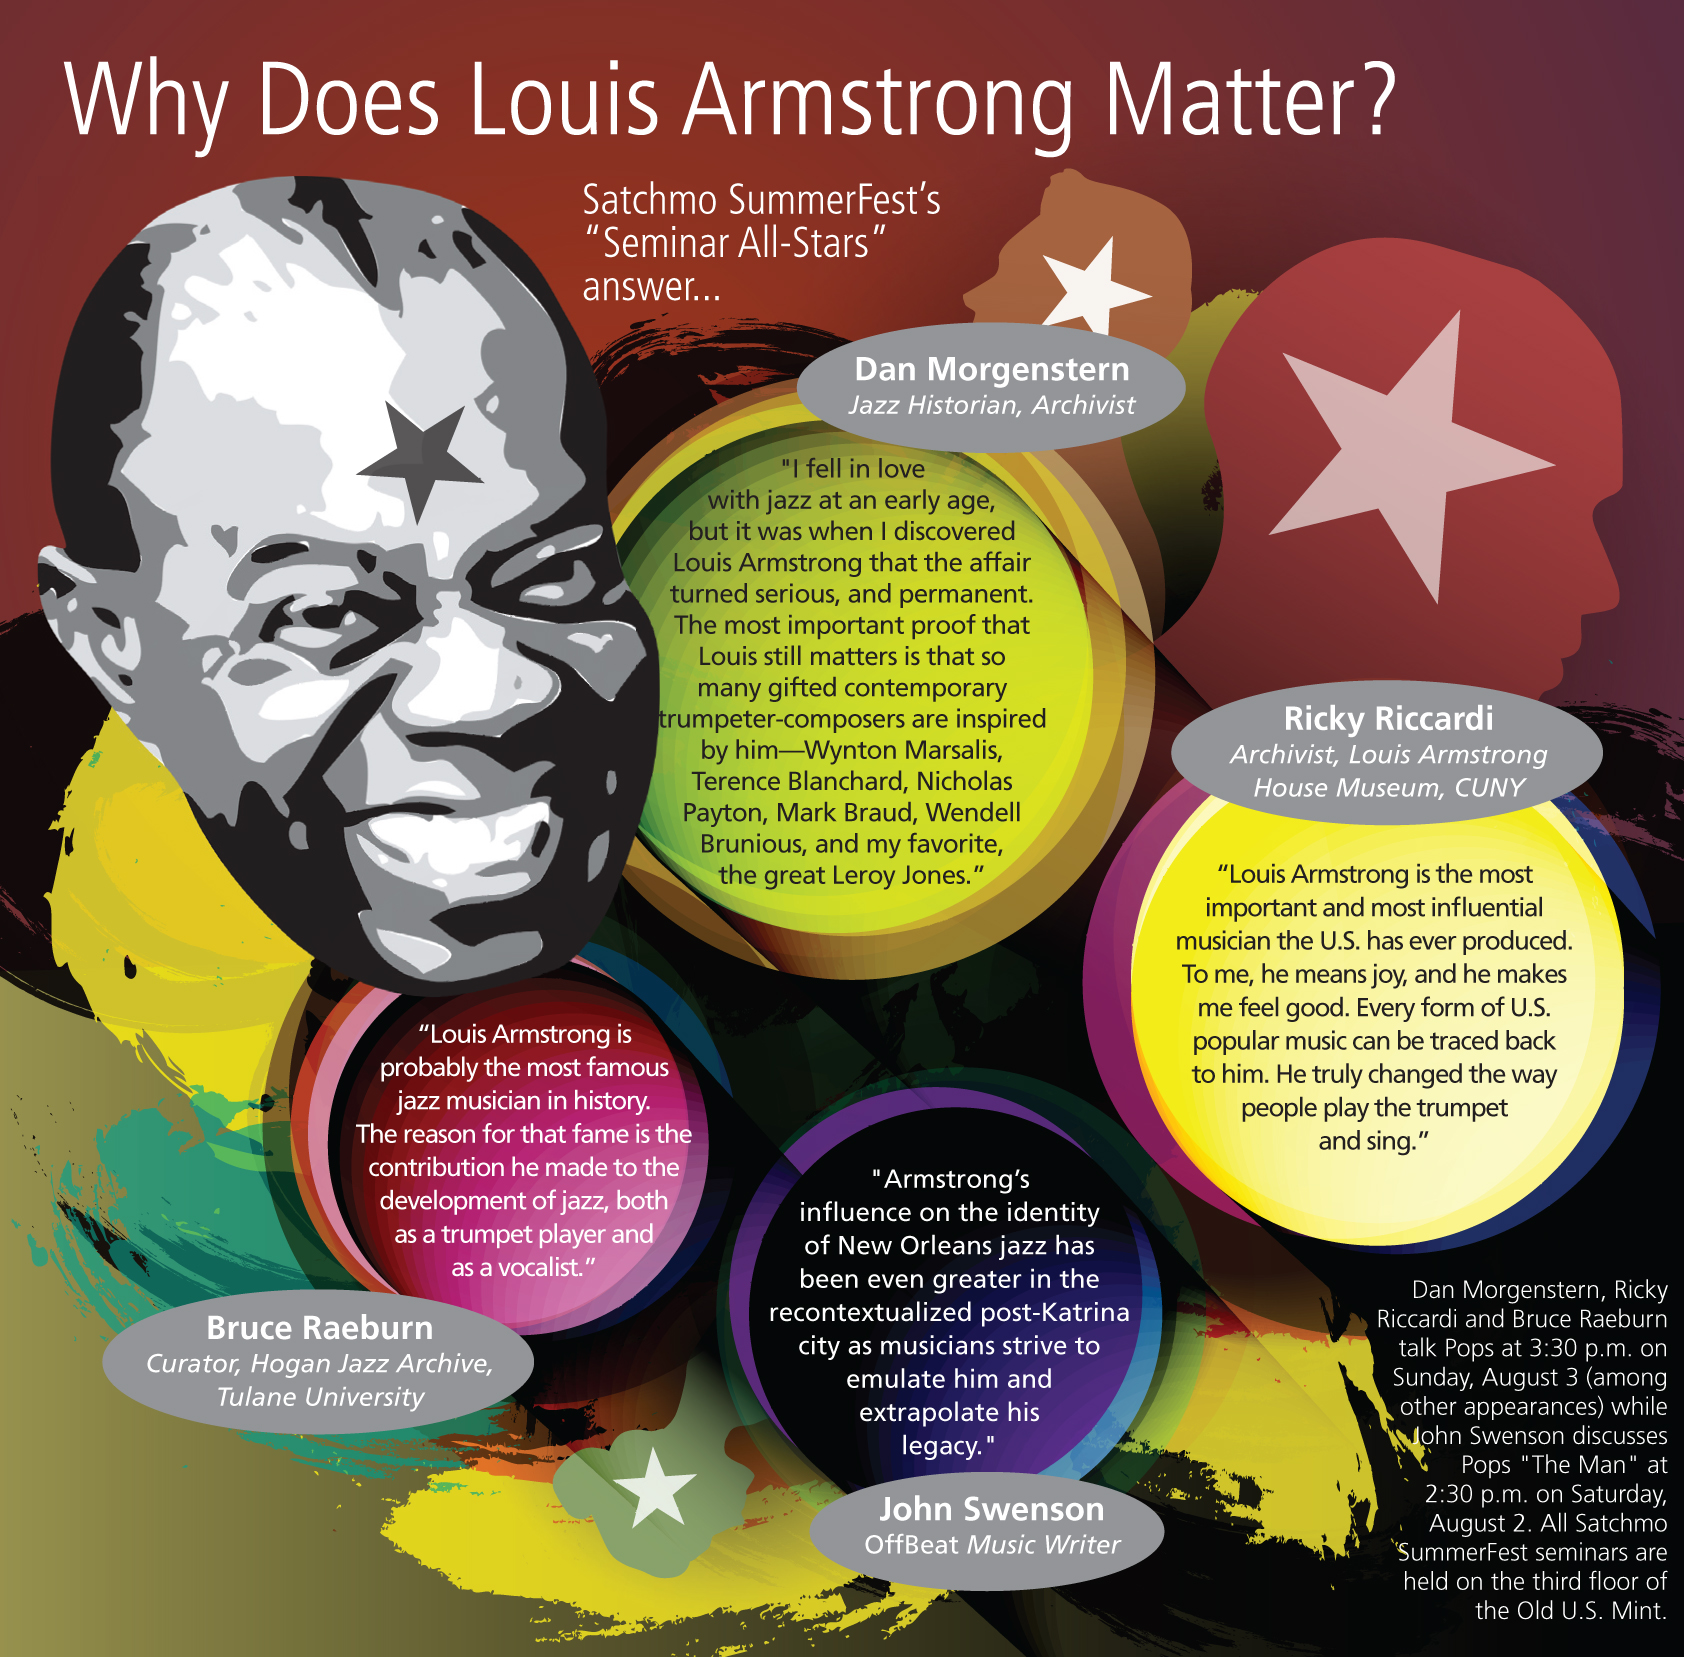 new mosaic records box set redefines louis armstrong s legacy satchmo infographic elsa hahne magazine 2014